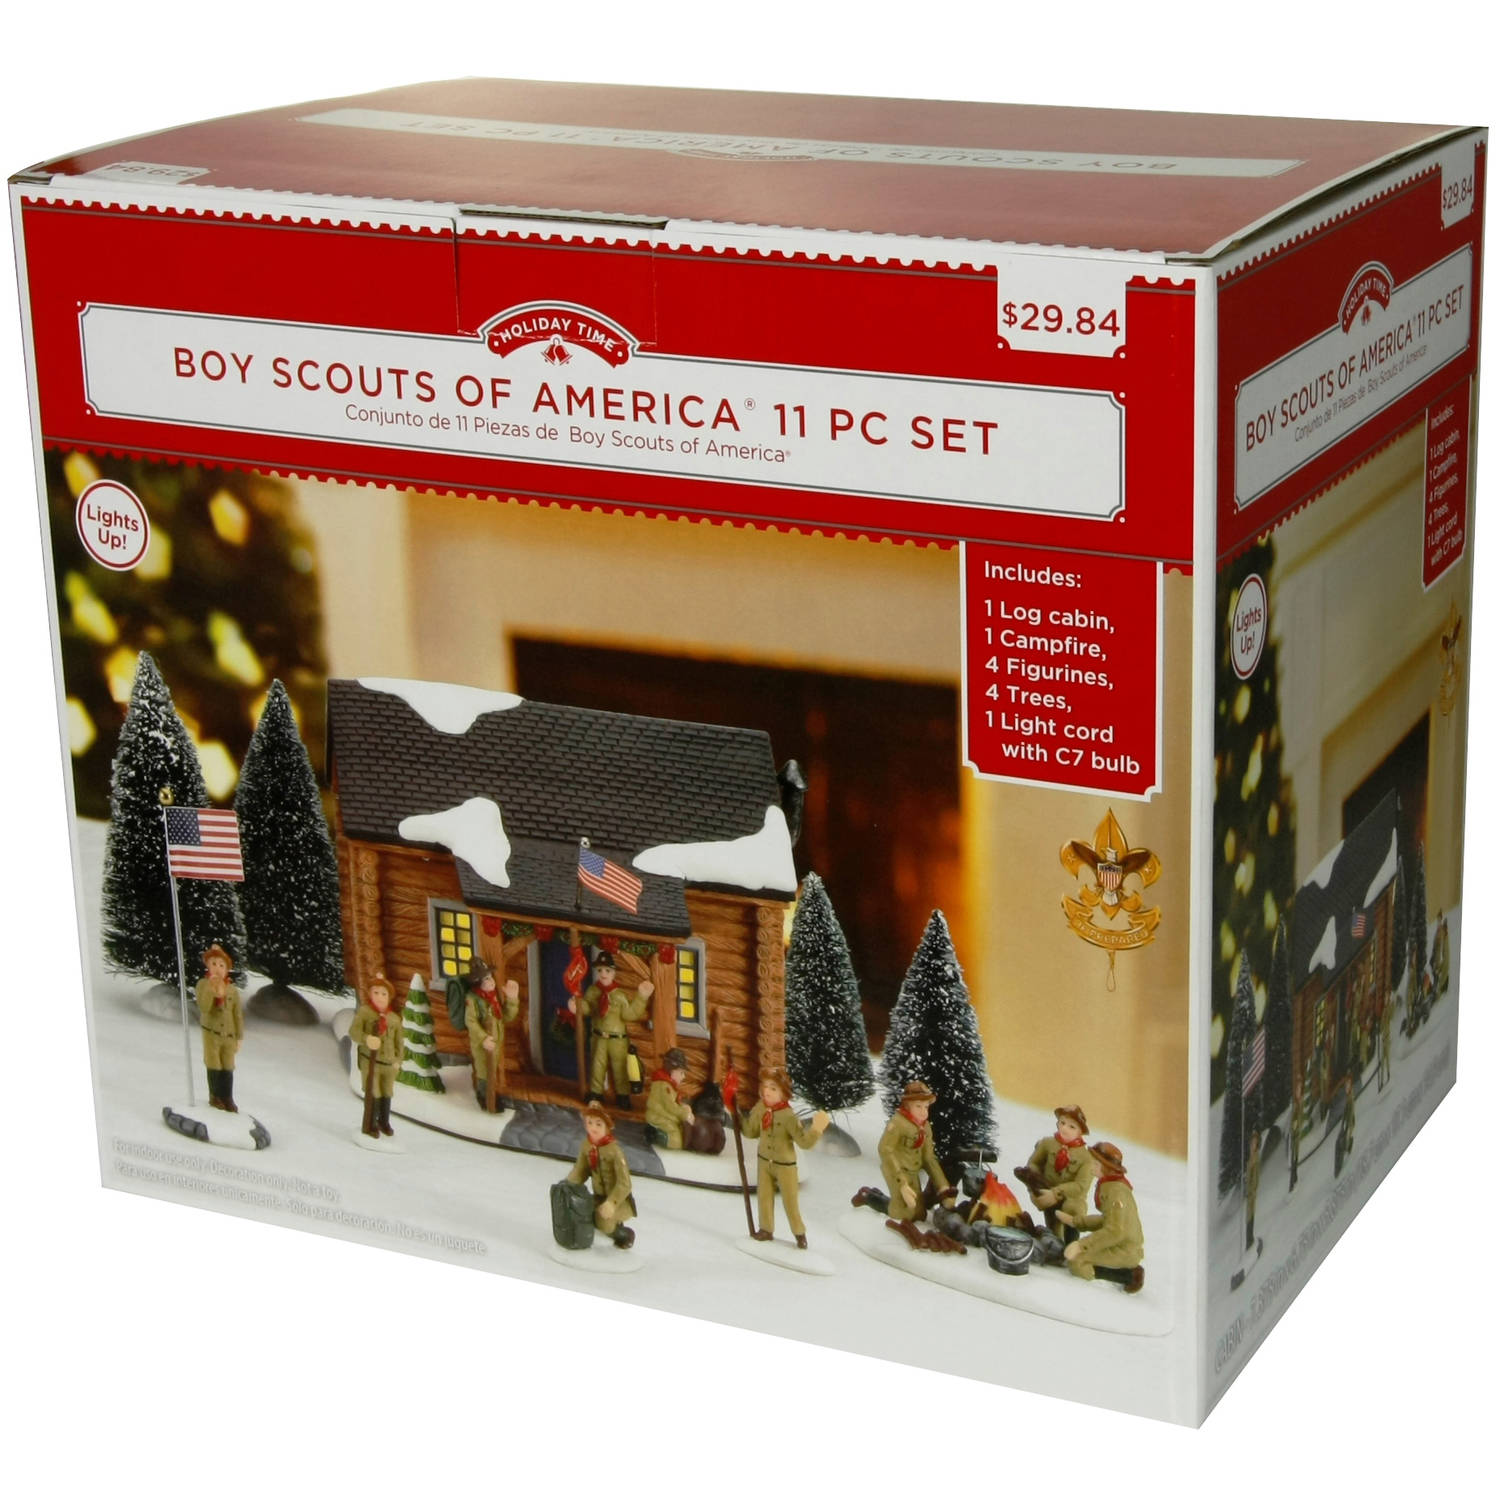 holiday time christmas decor boy scouts of america 11 piece villageholiday time christmas decor boy scouts of america 11 piece village set walmart com